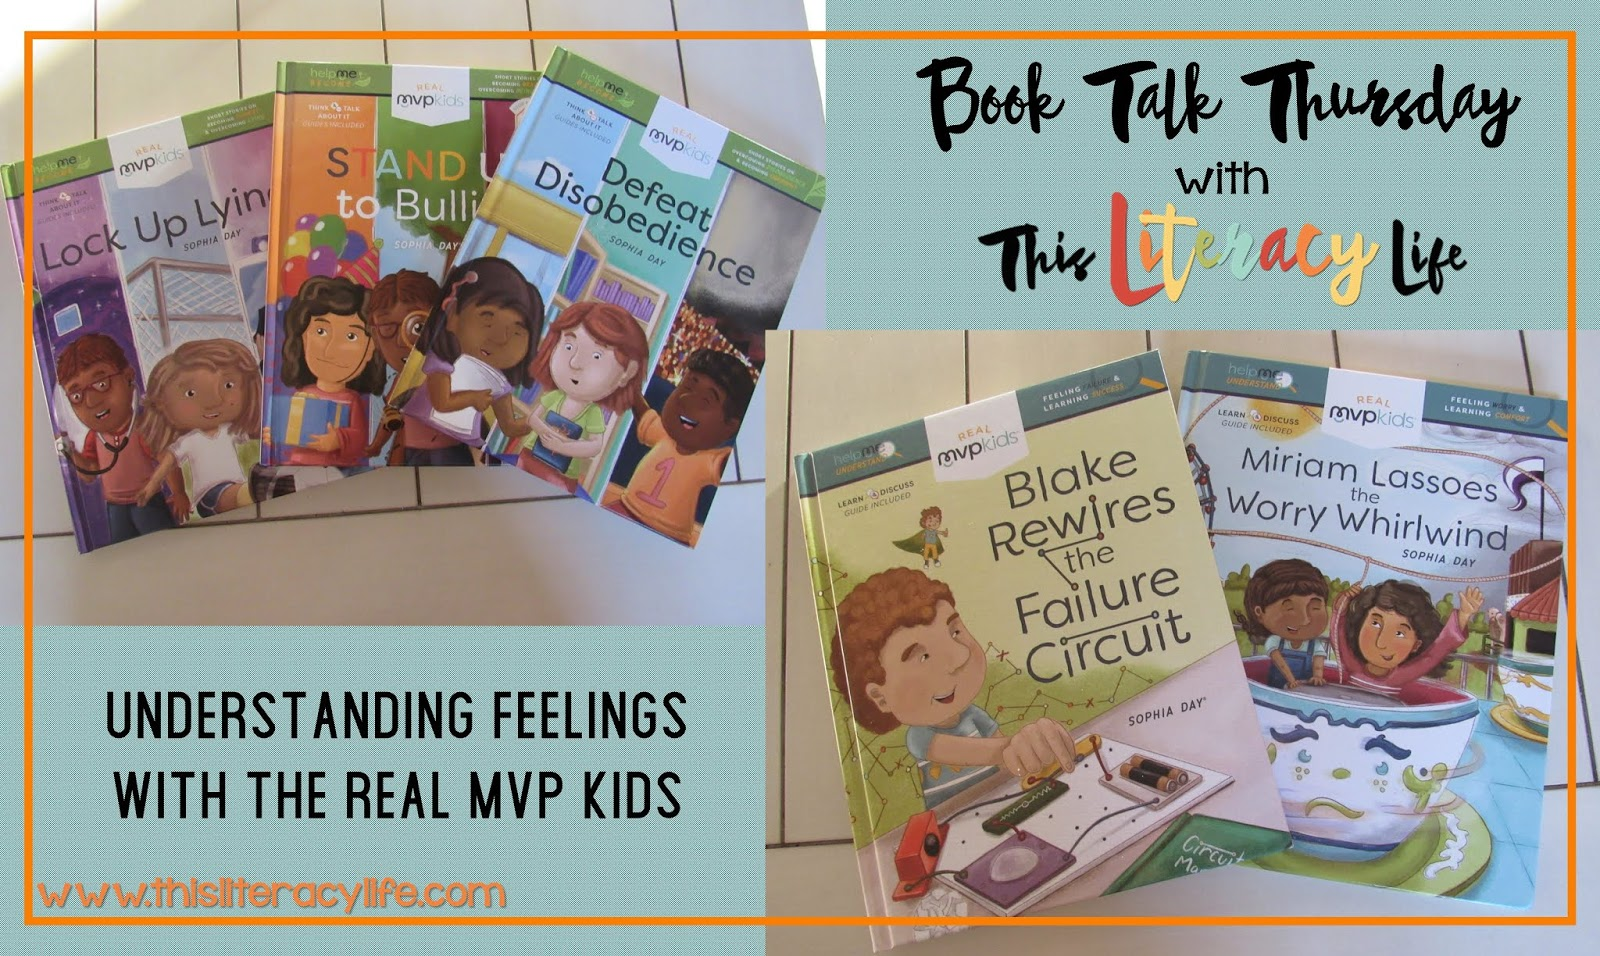 It's tough being a kid sometimes! Their feelings are all over the place sometimes. The Real MVP Kids have ways to help young children better understand their feelings in these new books.